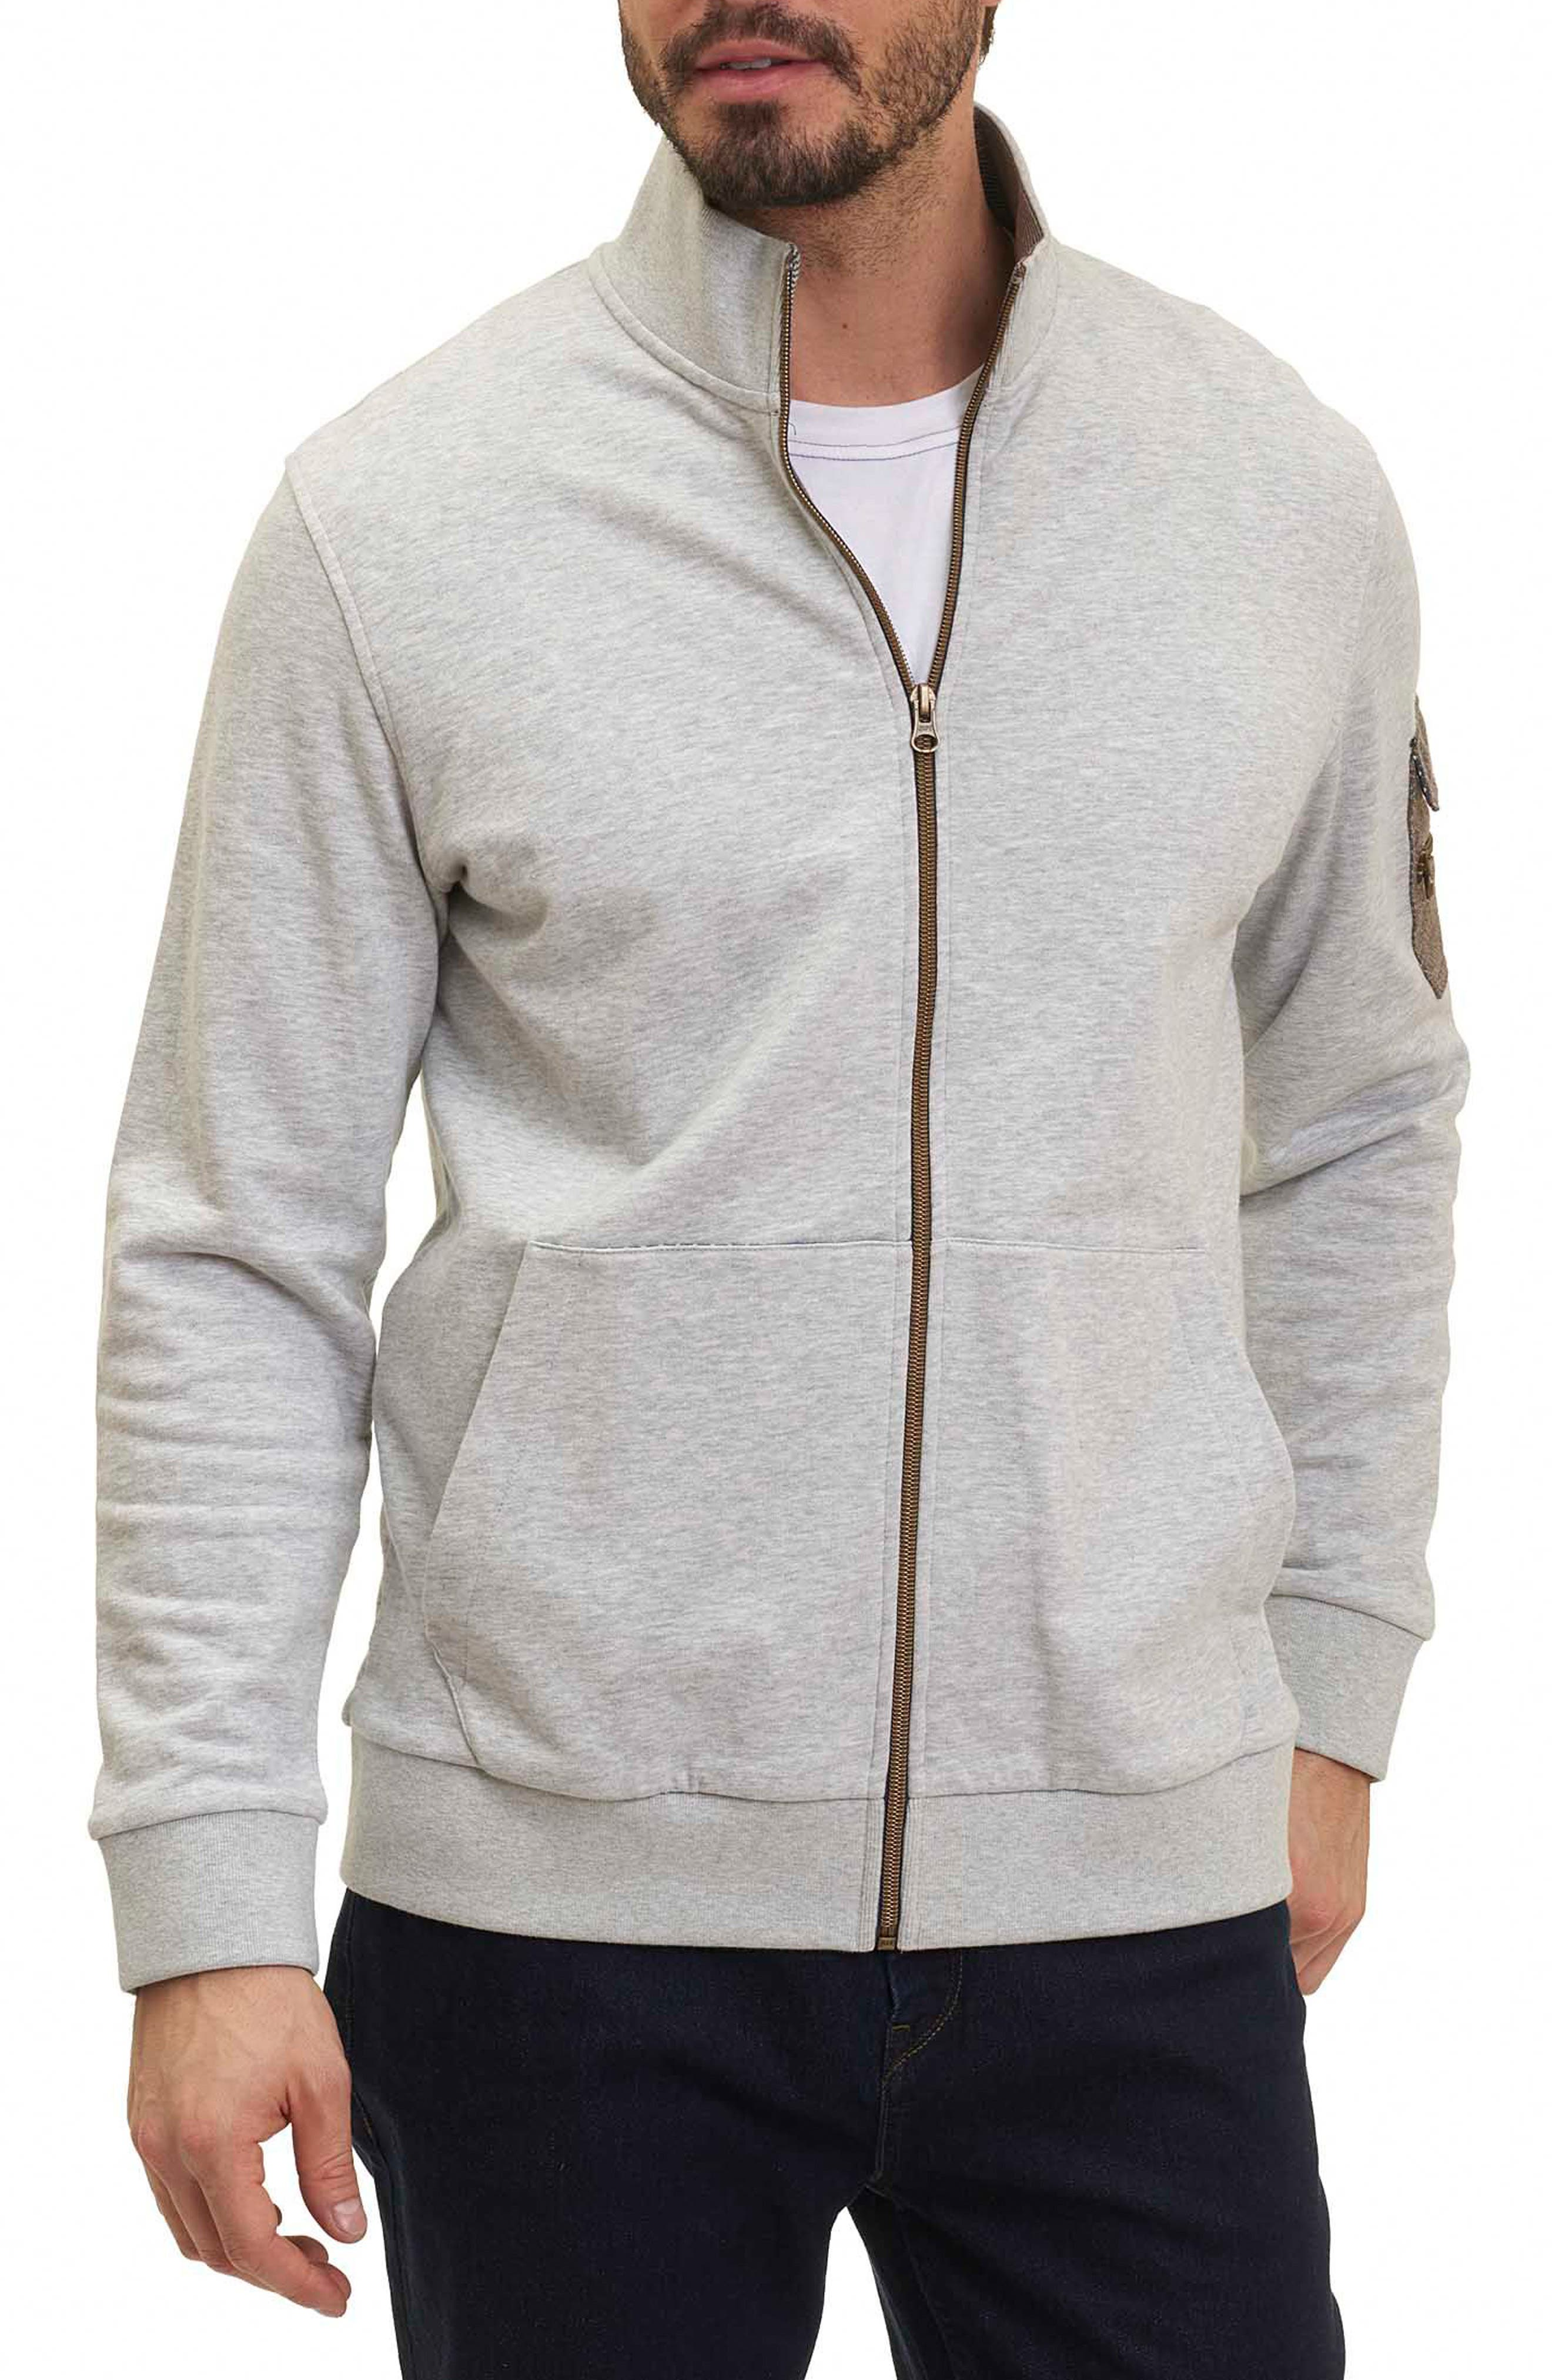 Robert Graham Semarang French Terry Zip Jacket